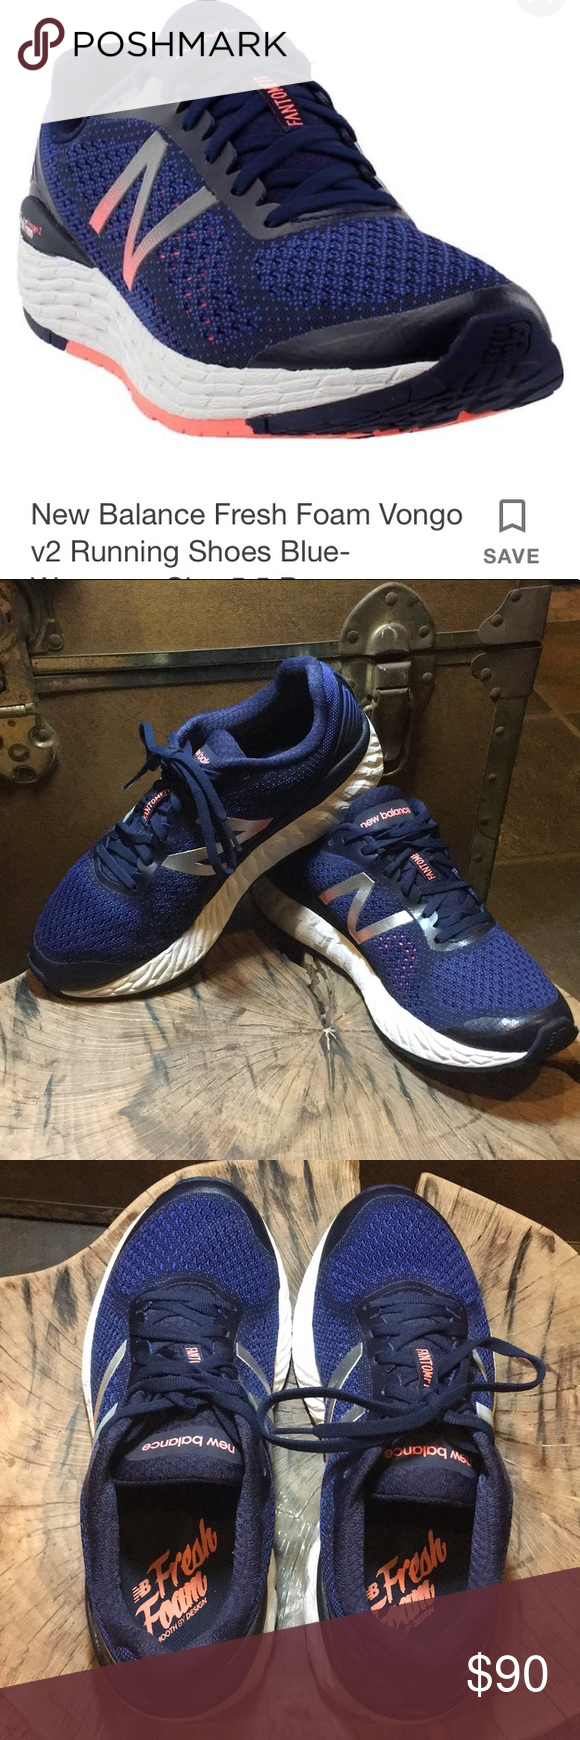 New Balance Fresh Foam Vongo 2 Stability Shoes New Balance Fresh Foam New Balance Shoes Road Running Shoes